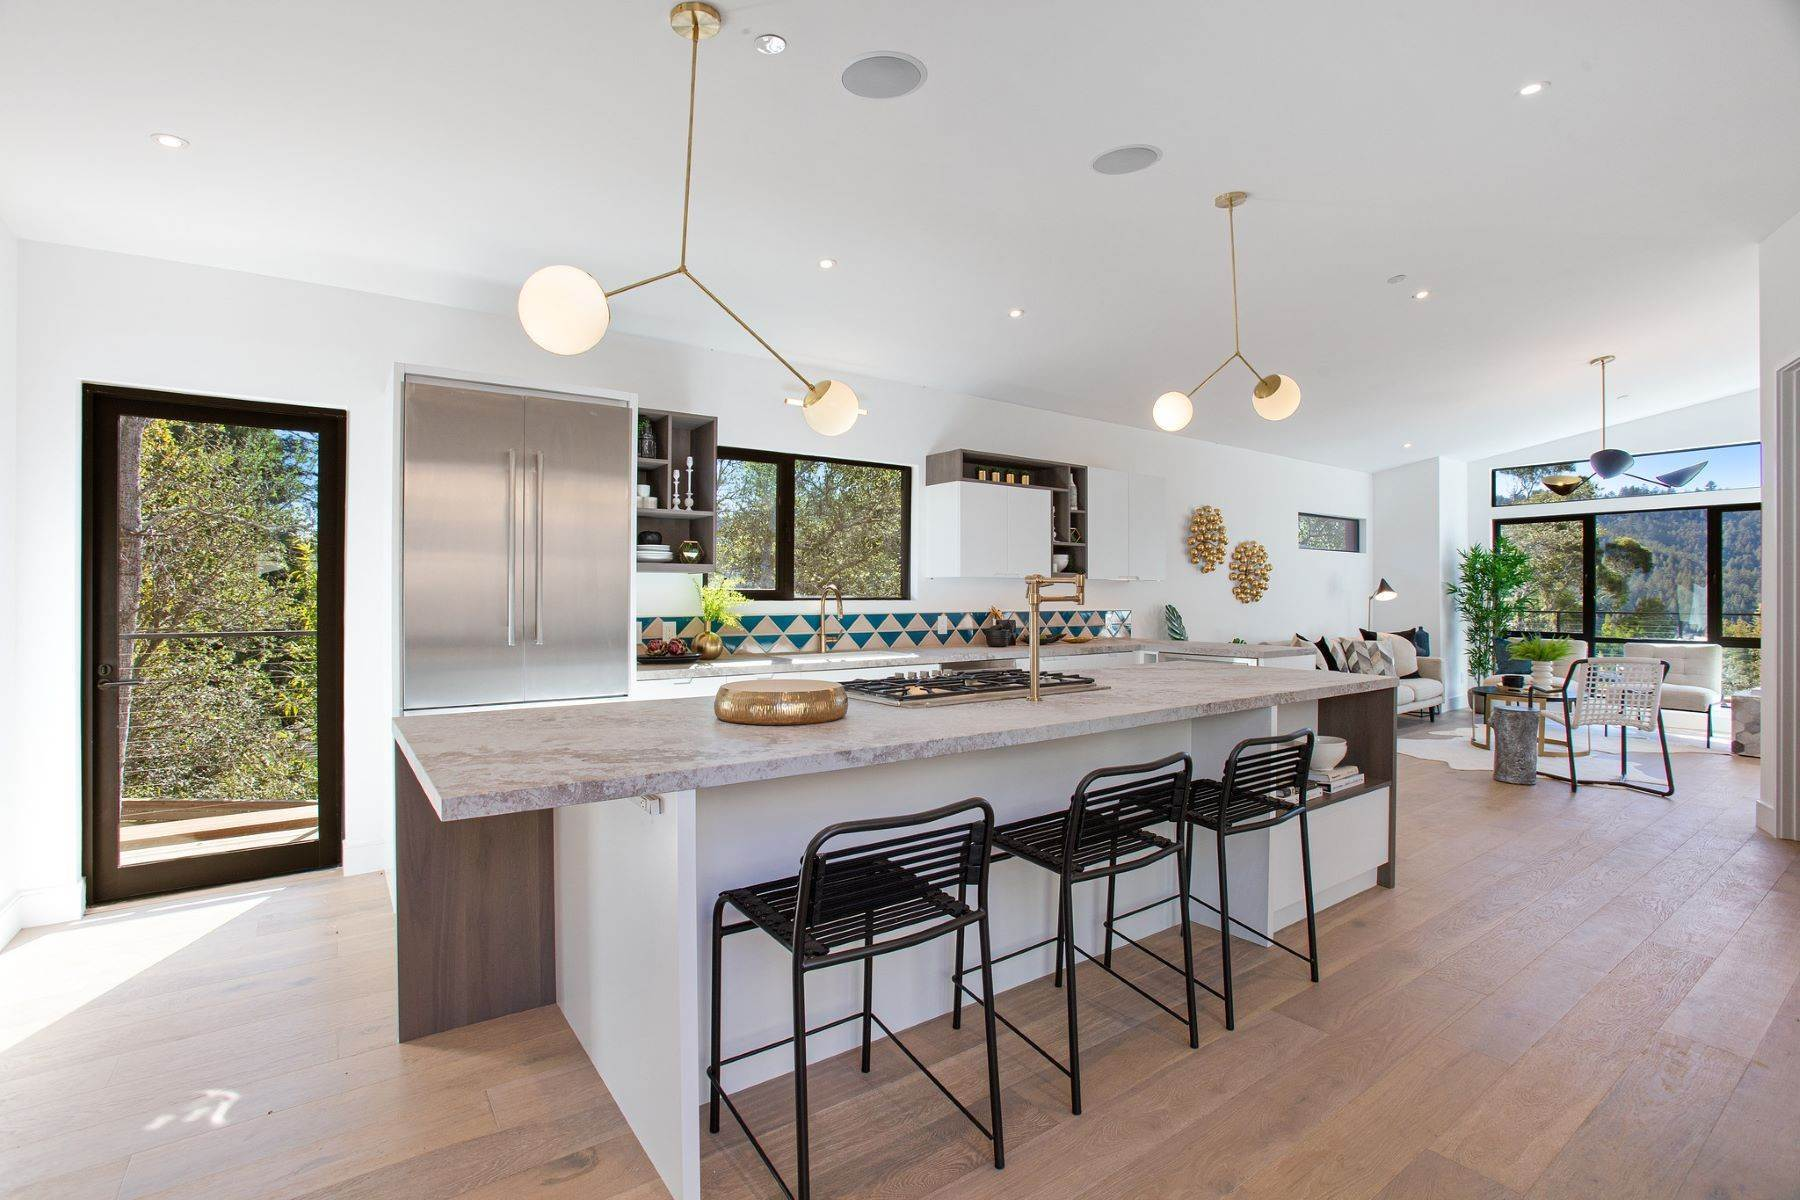 6. Single Family Homes for Sale at Modern New Construction in Mill Valley 315 Tamalpais Avenue Mill Valley, California 94941 United States